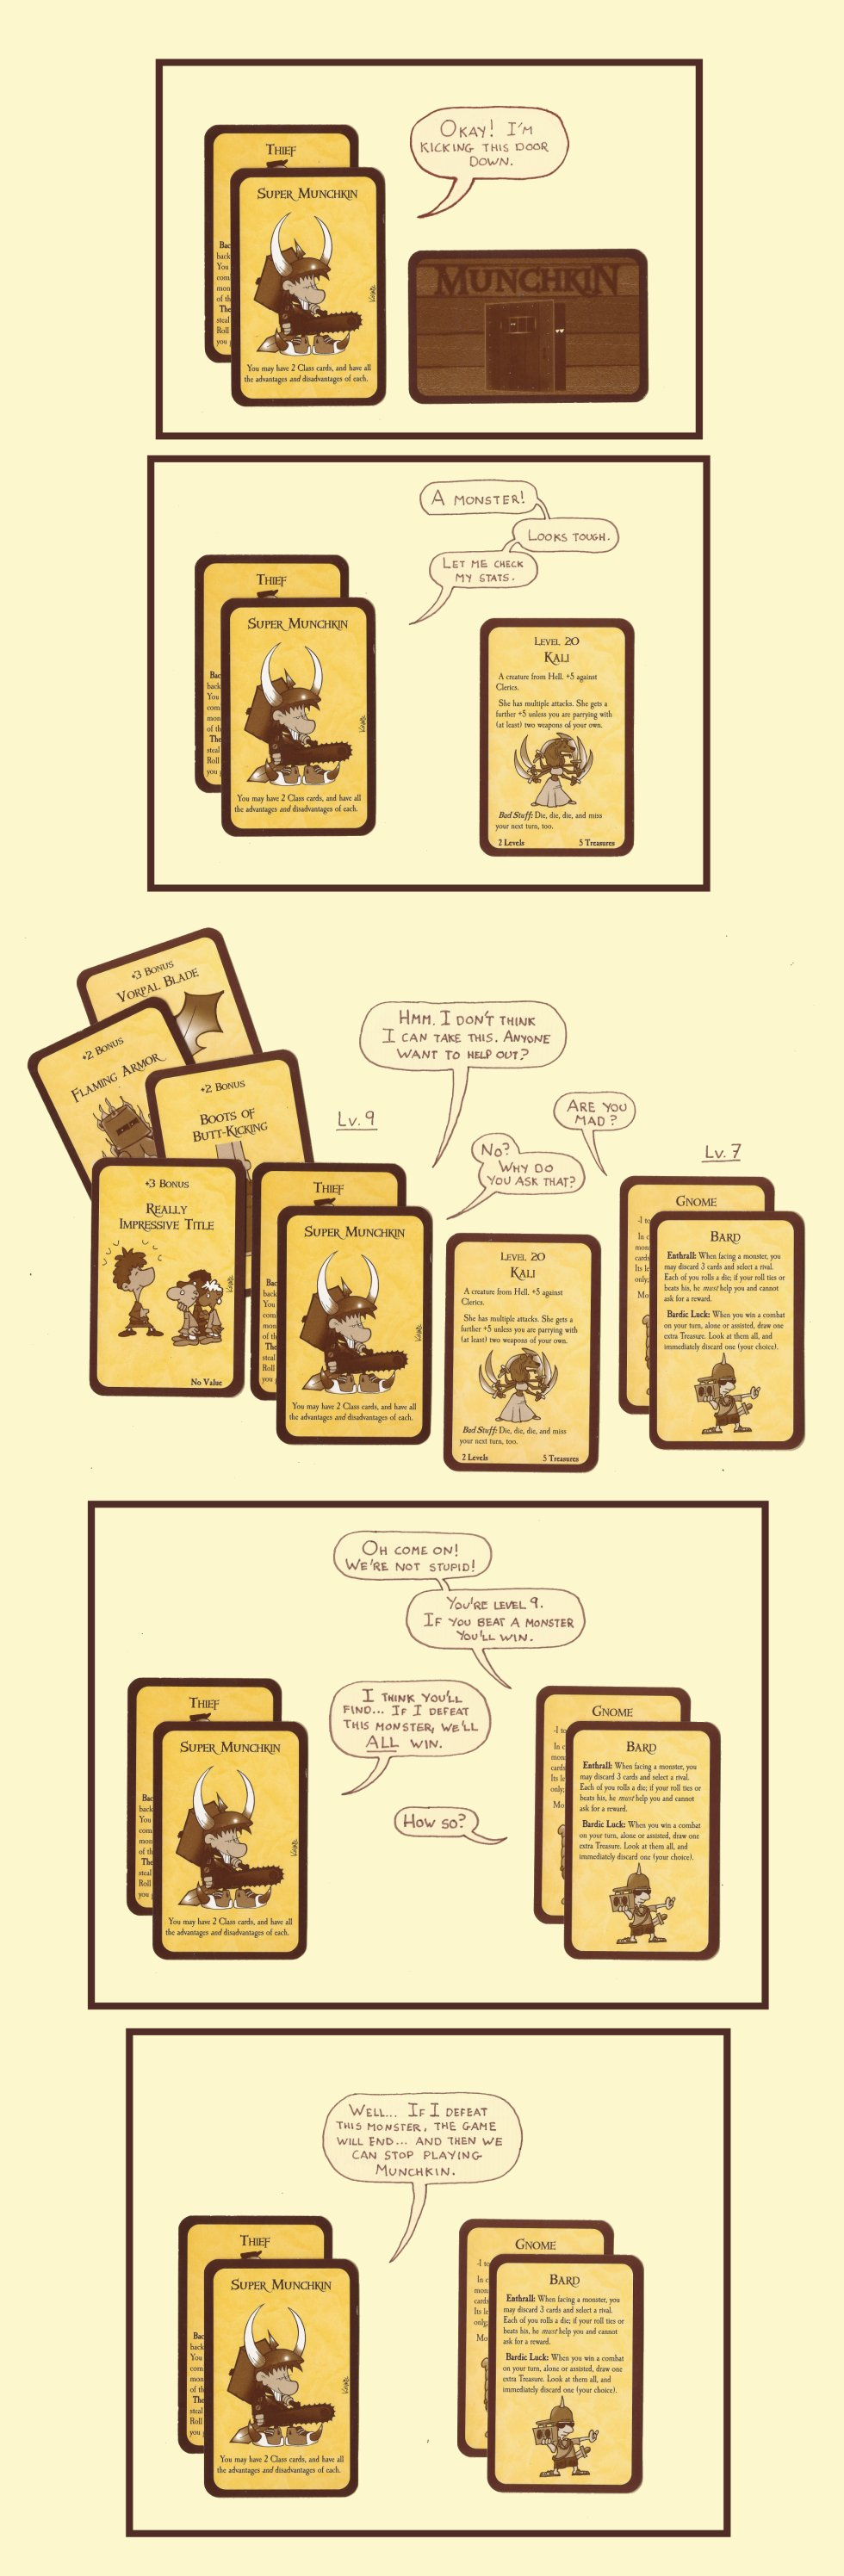 Munchkin hits critical mass at around 8 players, any more, and the chances of ending the game with people trying to win become nil, as there will always be enough curse cards available to prevent the win.